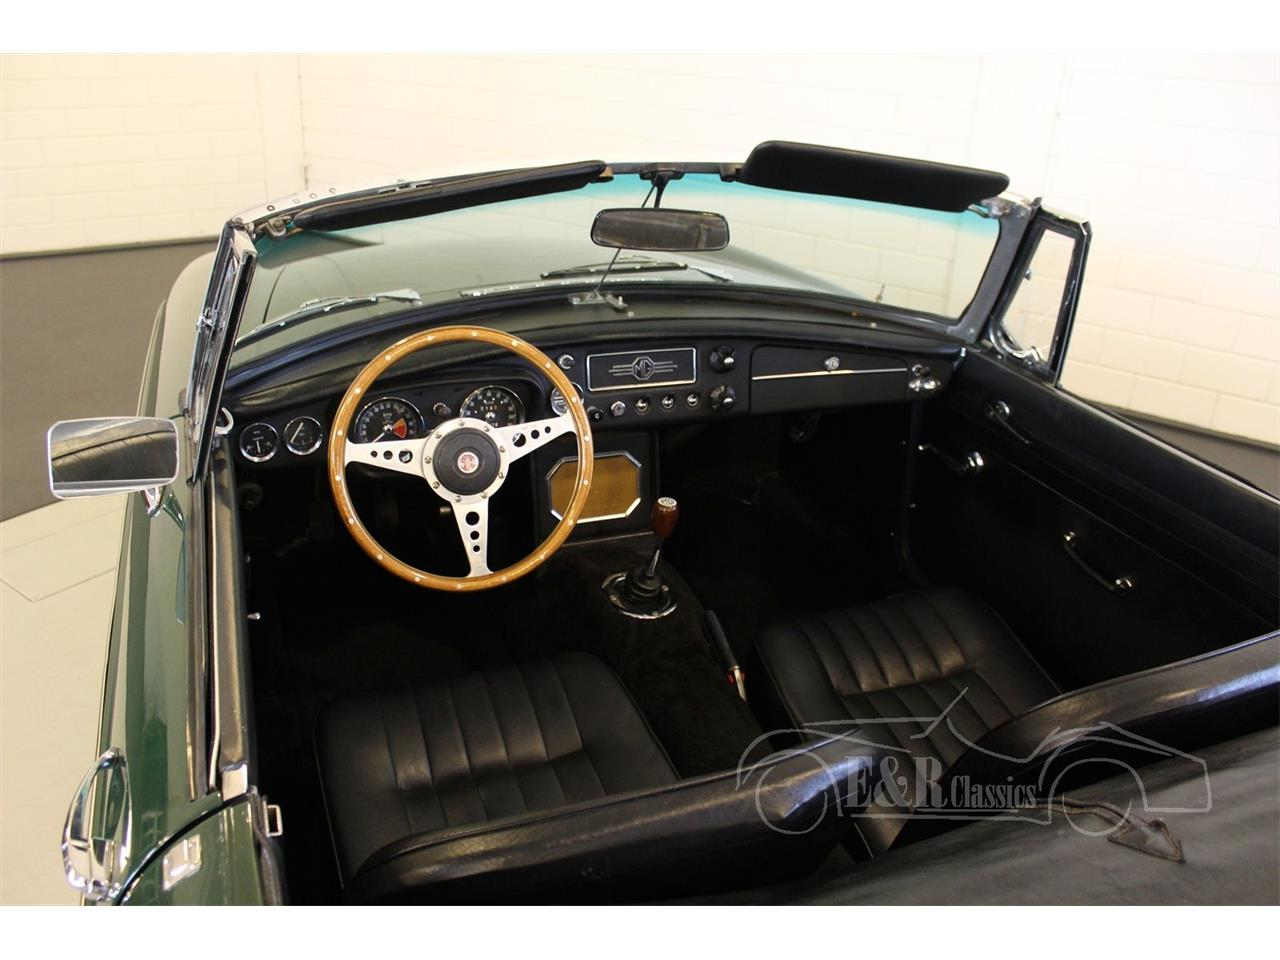 Large Picture of Classic 1964 MG MGB located in Waalwijk noord brabant - Q178